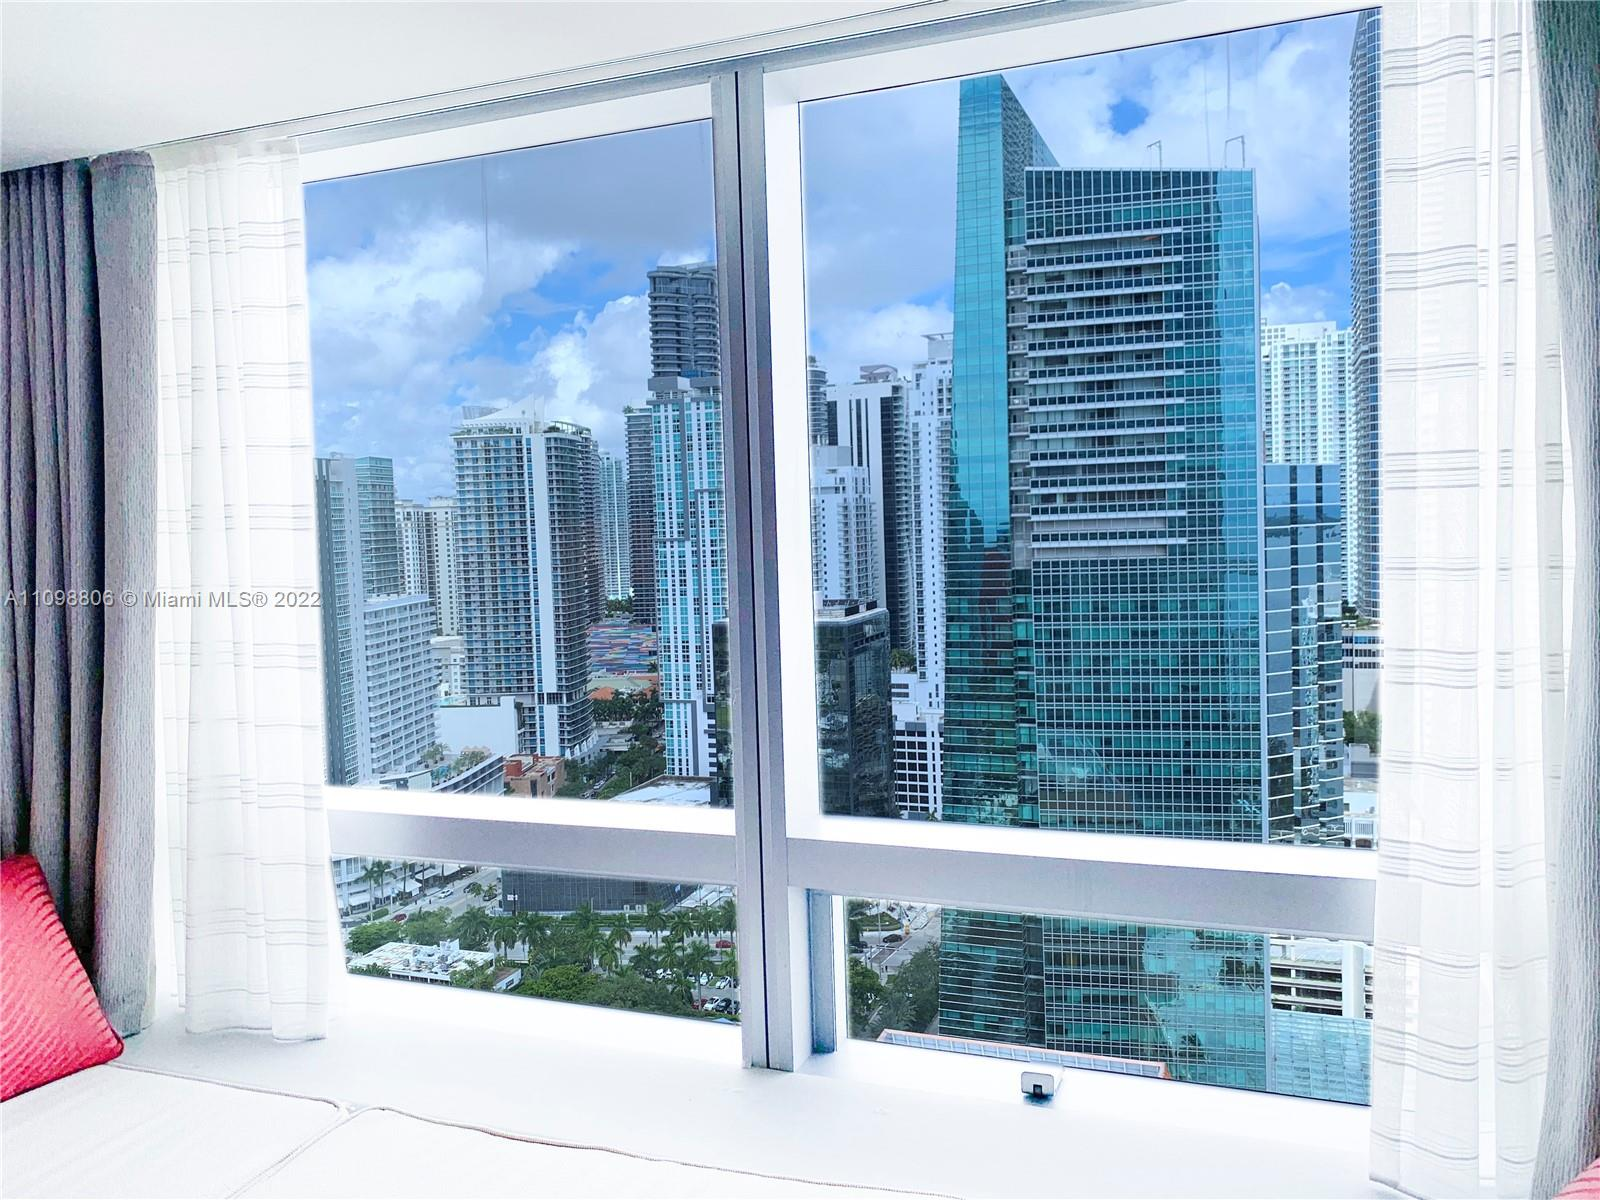 Stay in a 5 star apartment (1/1.5) in Four Seasons Brickell. Enjoy the luxury amenities and dinning inside the hotel and take a walk in the area.  The hotel / condo has two incredible pools with private cabanas, a spa, and delicious restaurants.  Rates may vary depending on the season and the lenght of the stay.